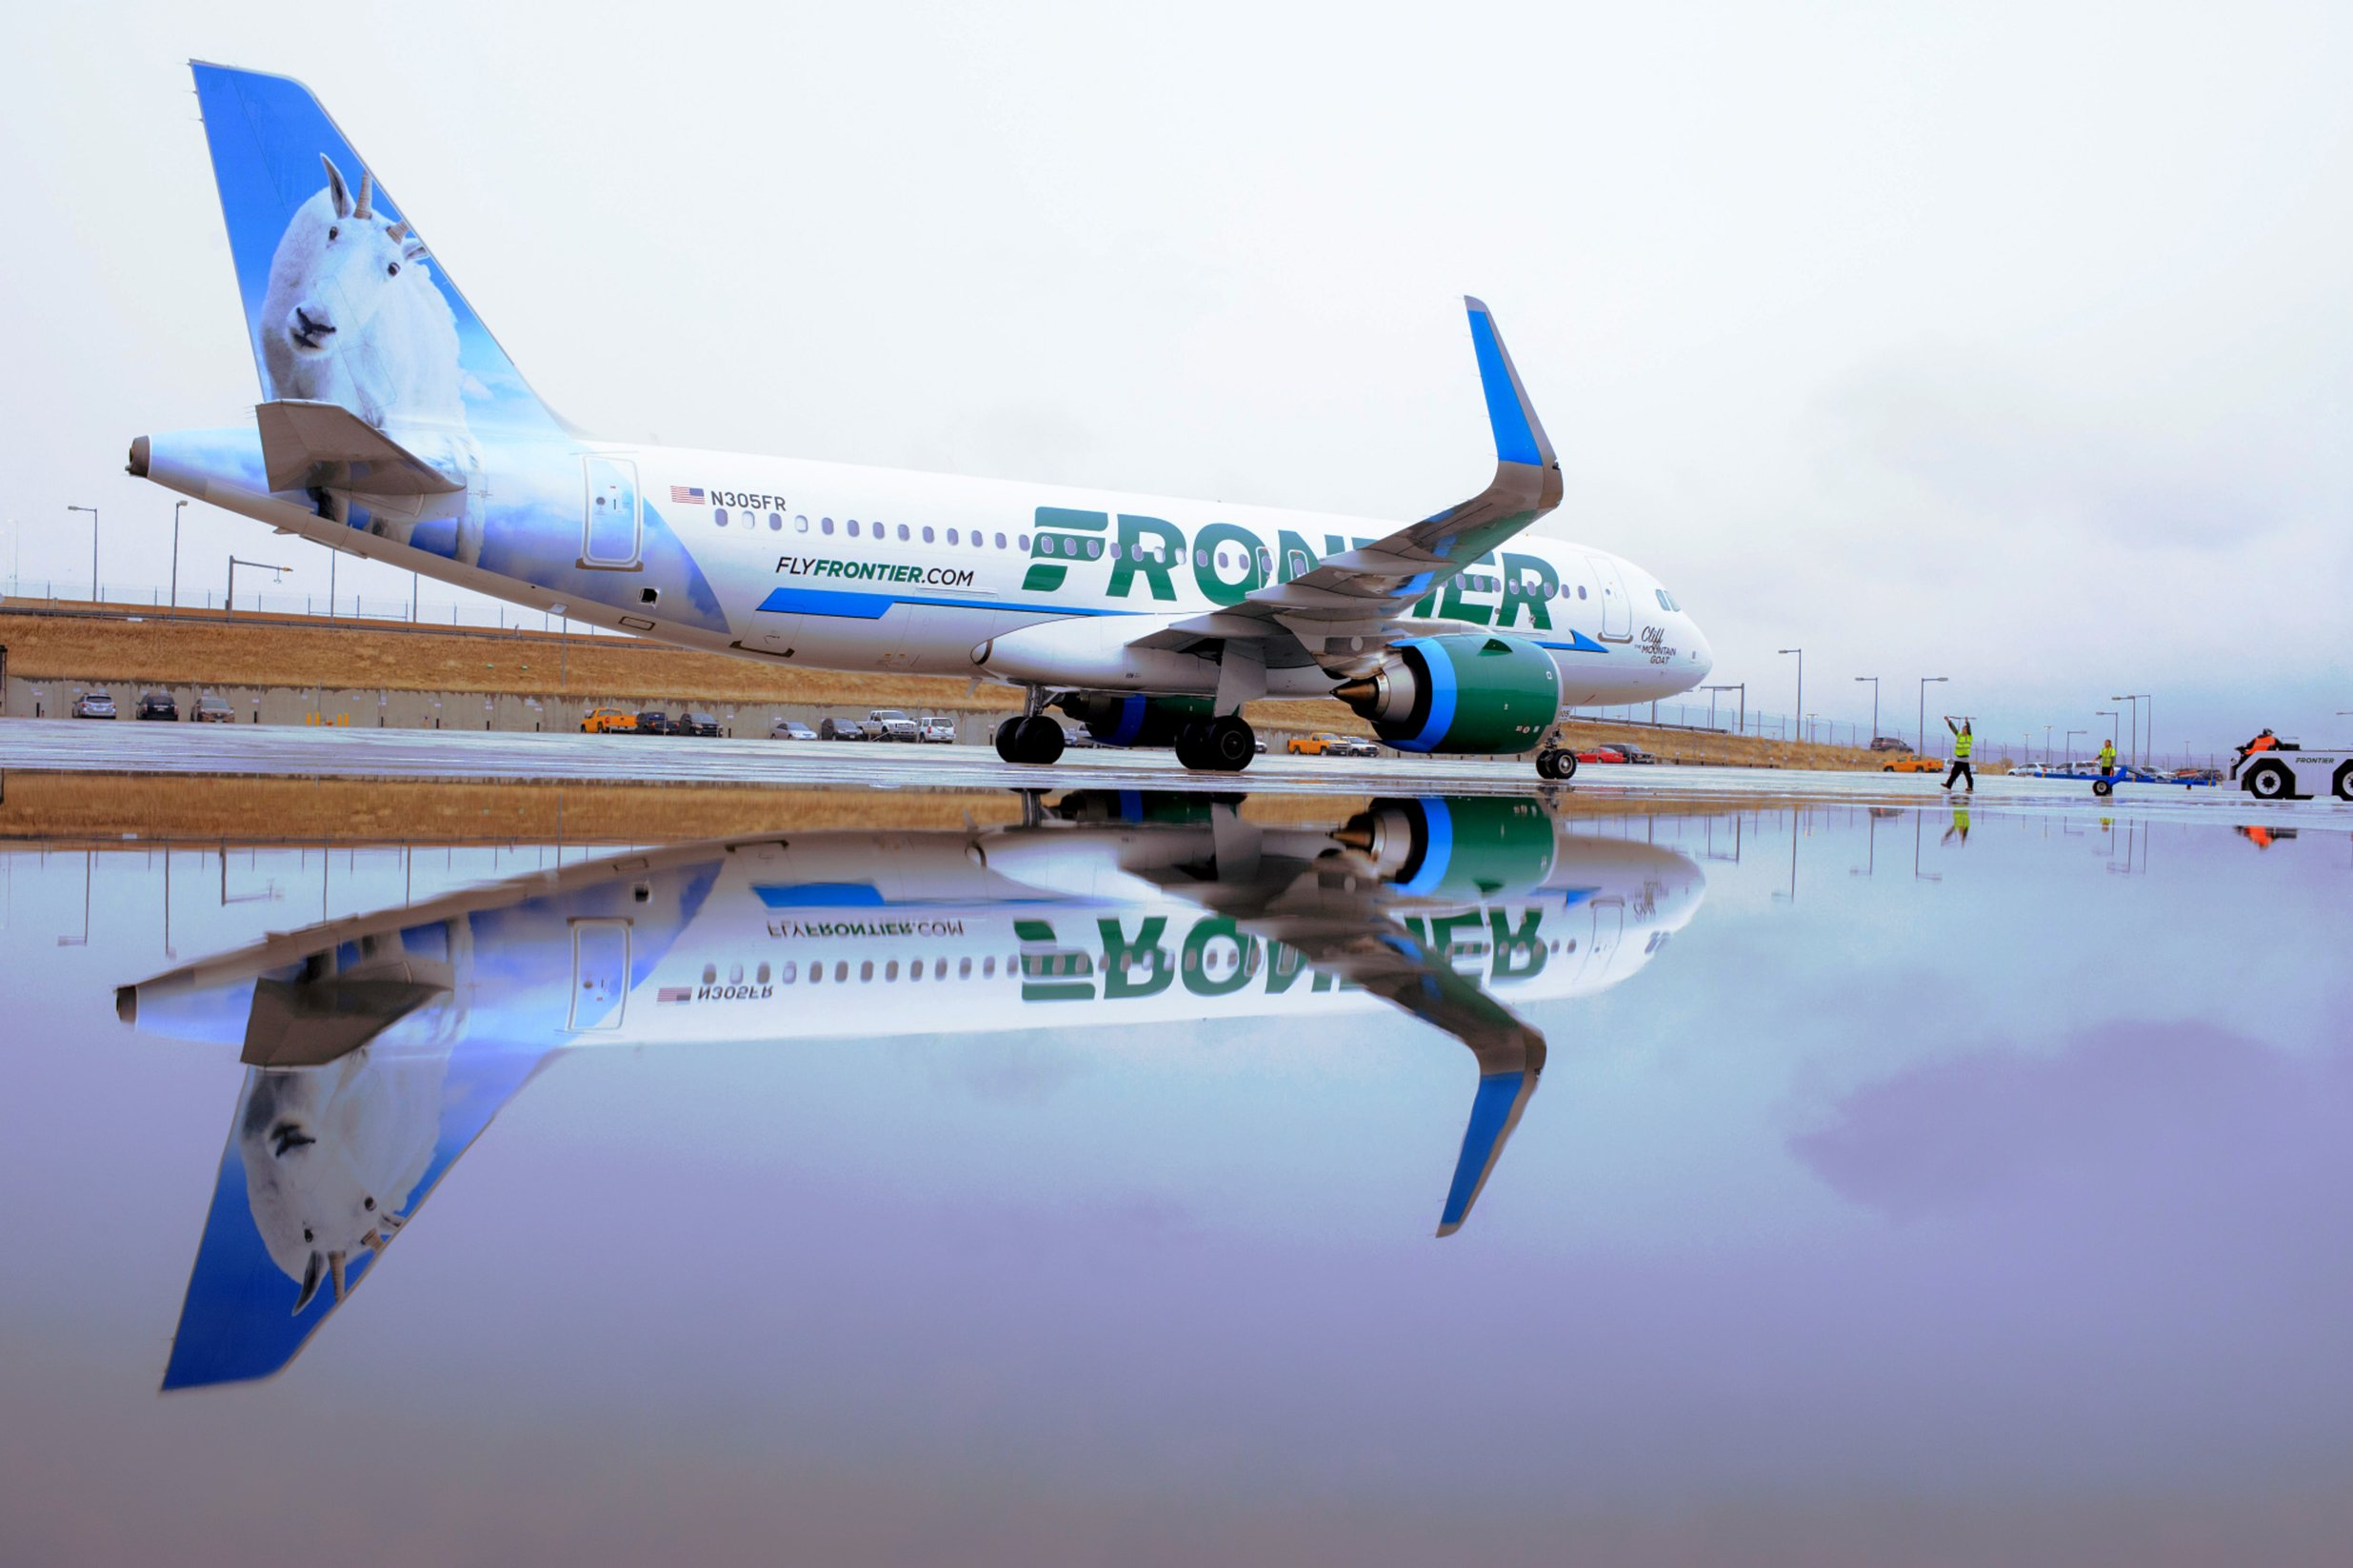 For $39 to $89, Frontier Airlines will let passengers keep their distance